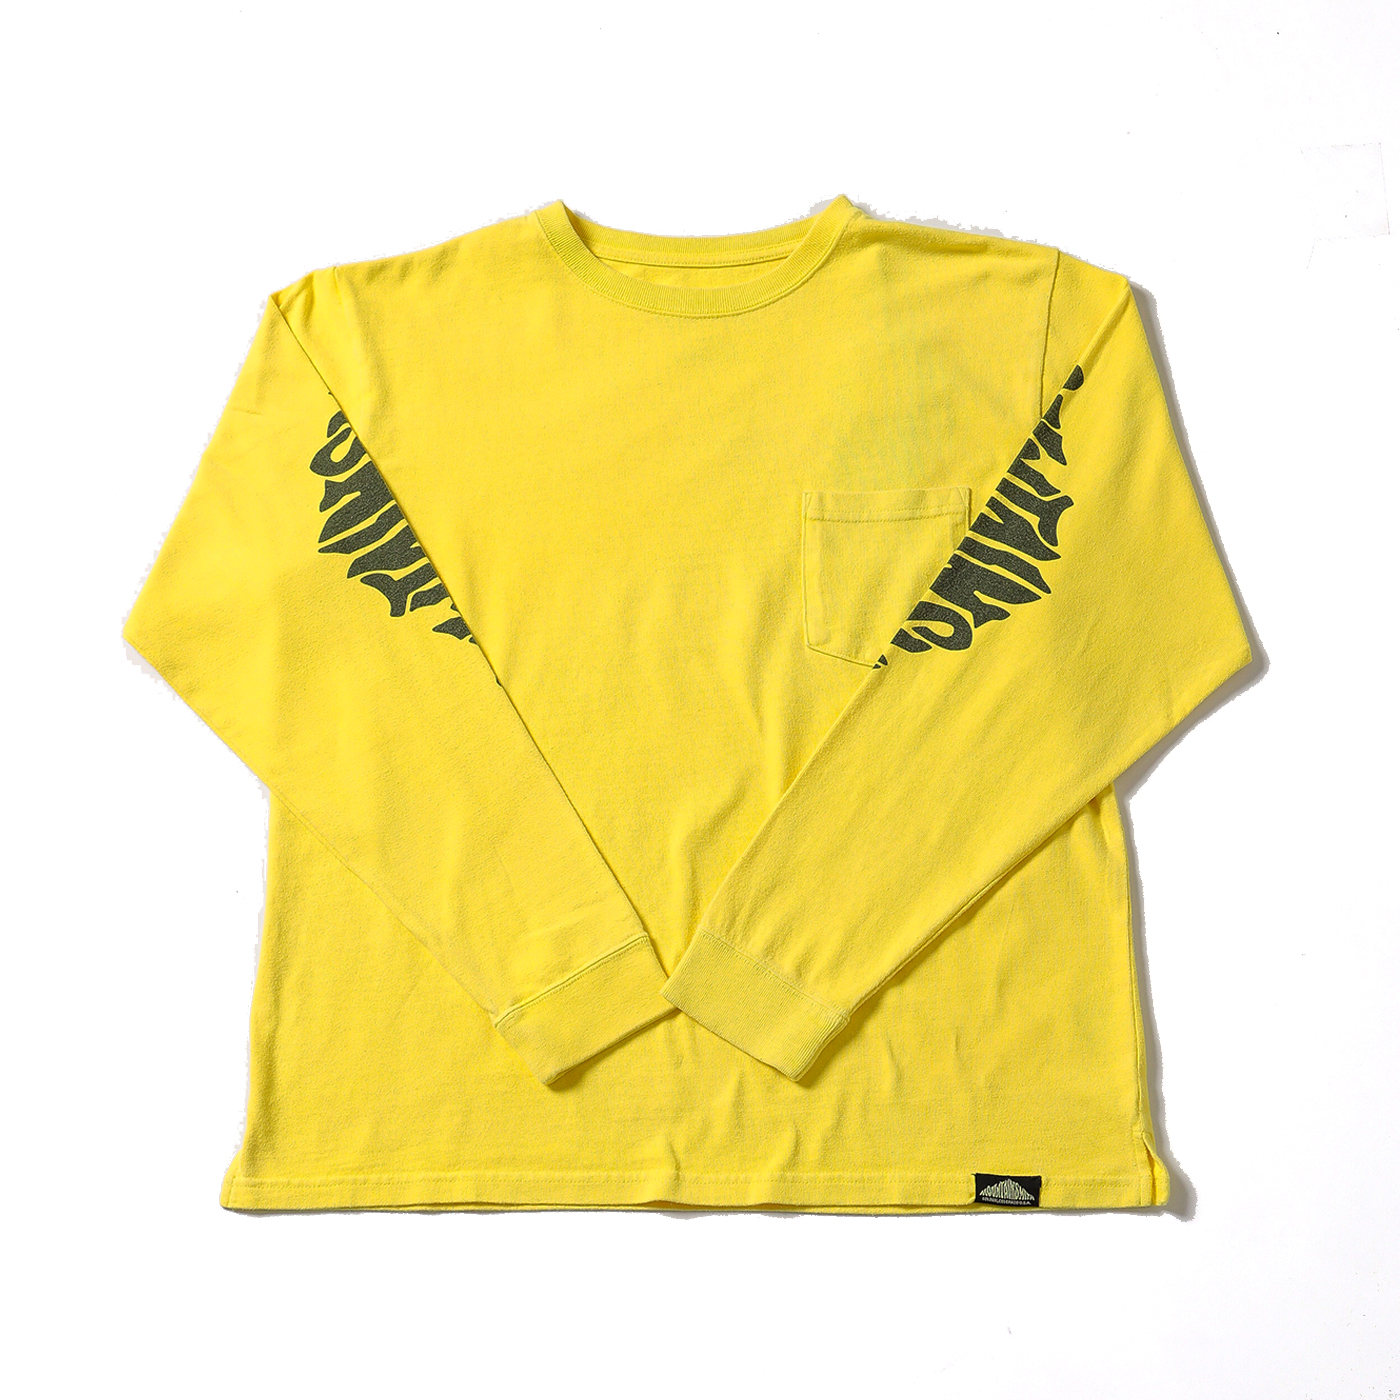 product: MS Climbing / color: YELLOW 1